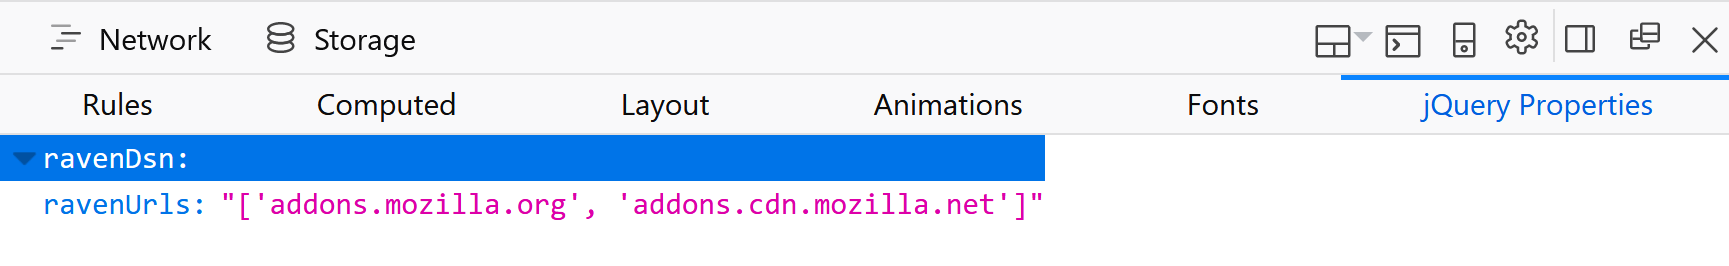 WebExtensions in Firefox 57   Mozilla Add-ons Blog